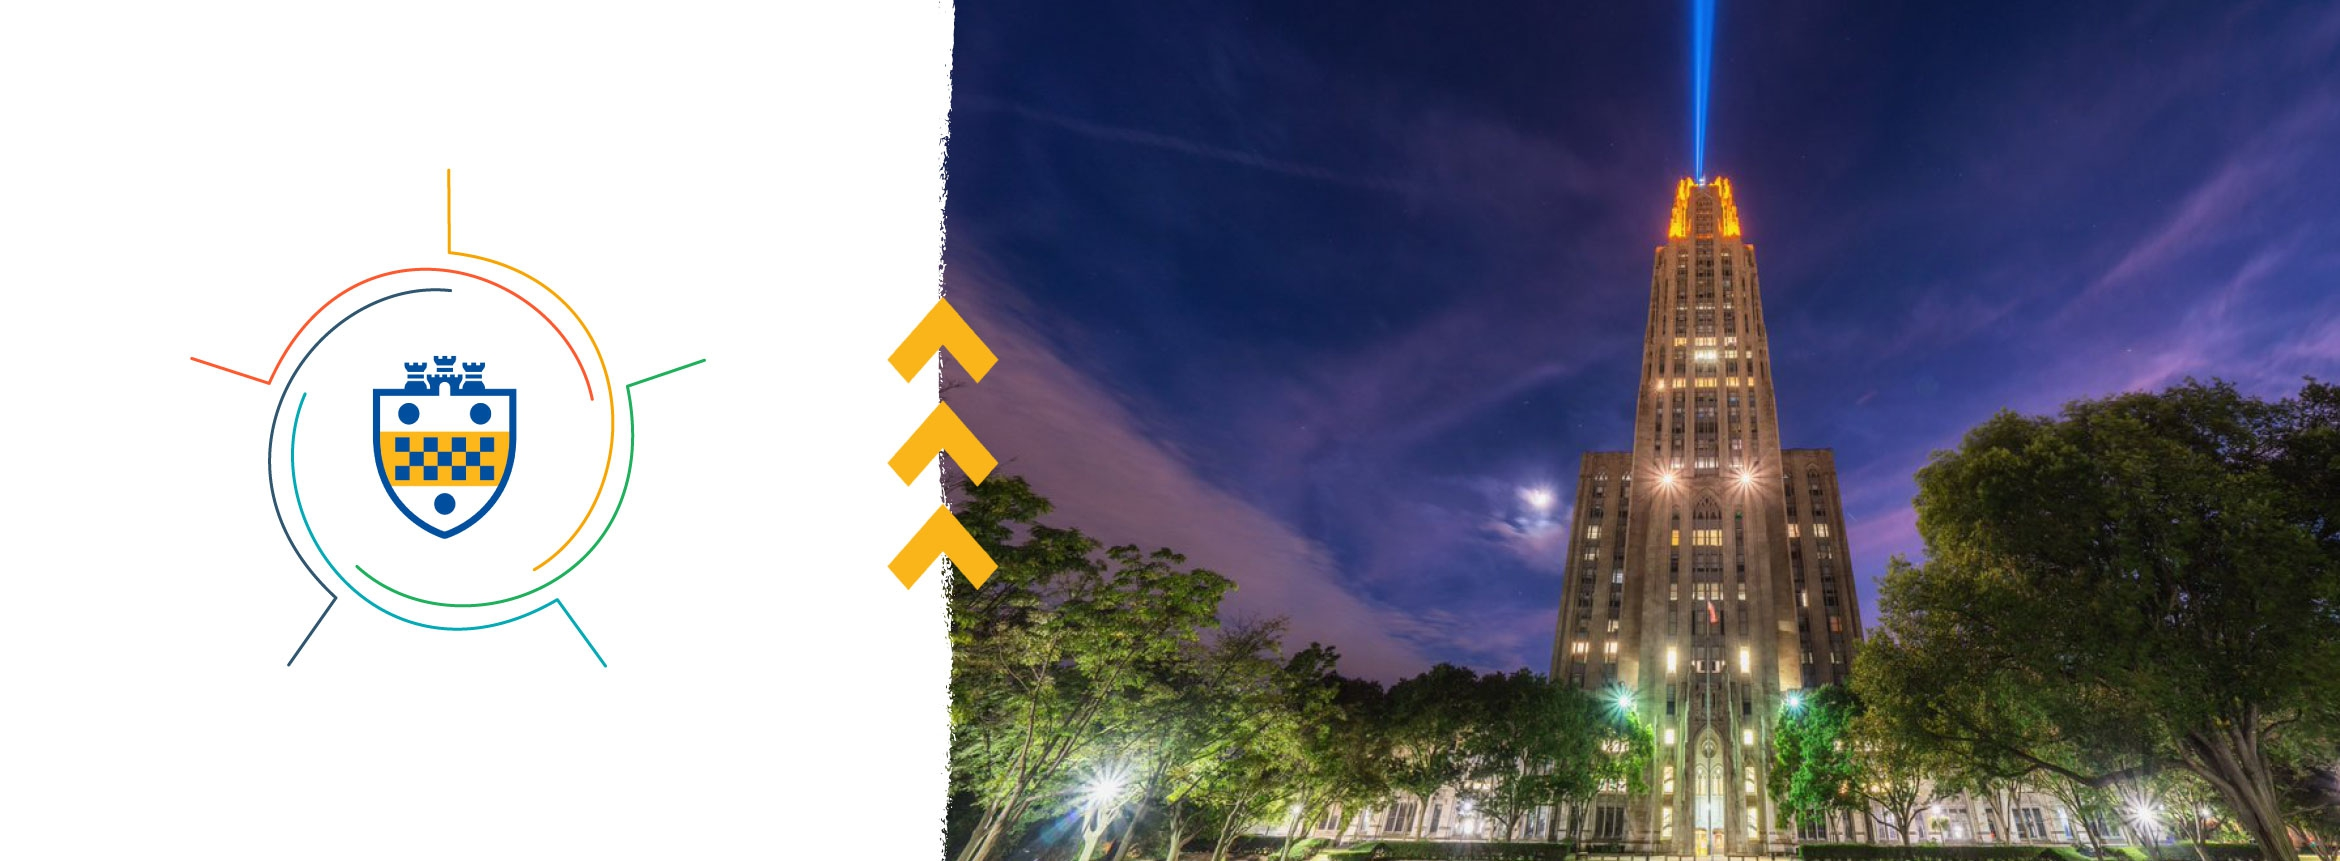 Cathedral of Learning and workplace graphic